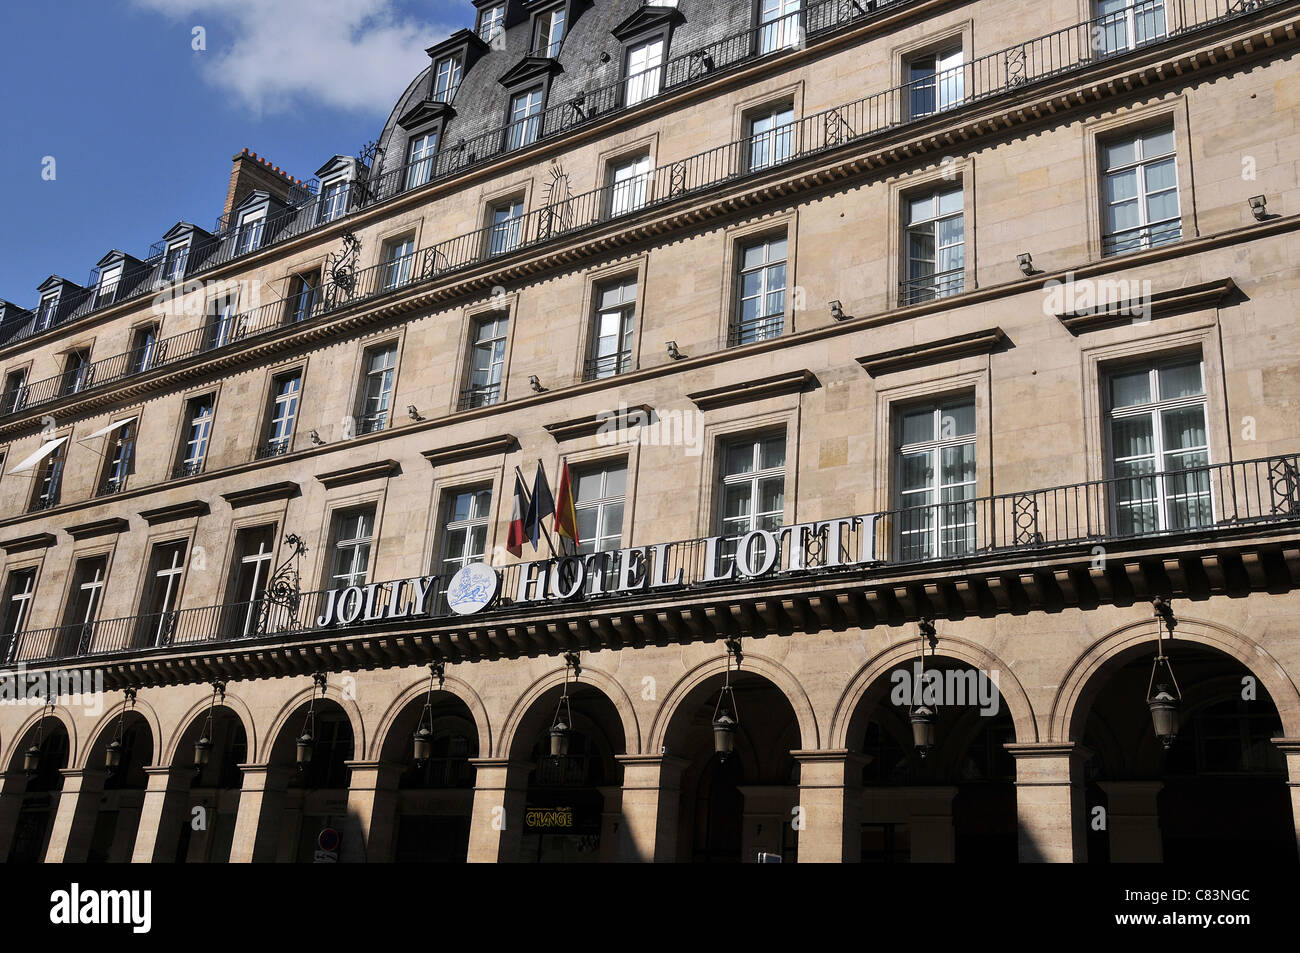 Jolly Hotel Lotti Paris France Photo Stock